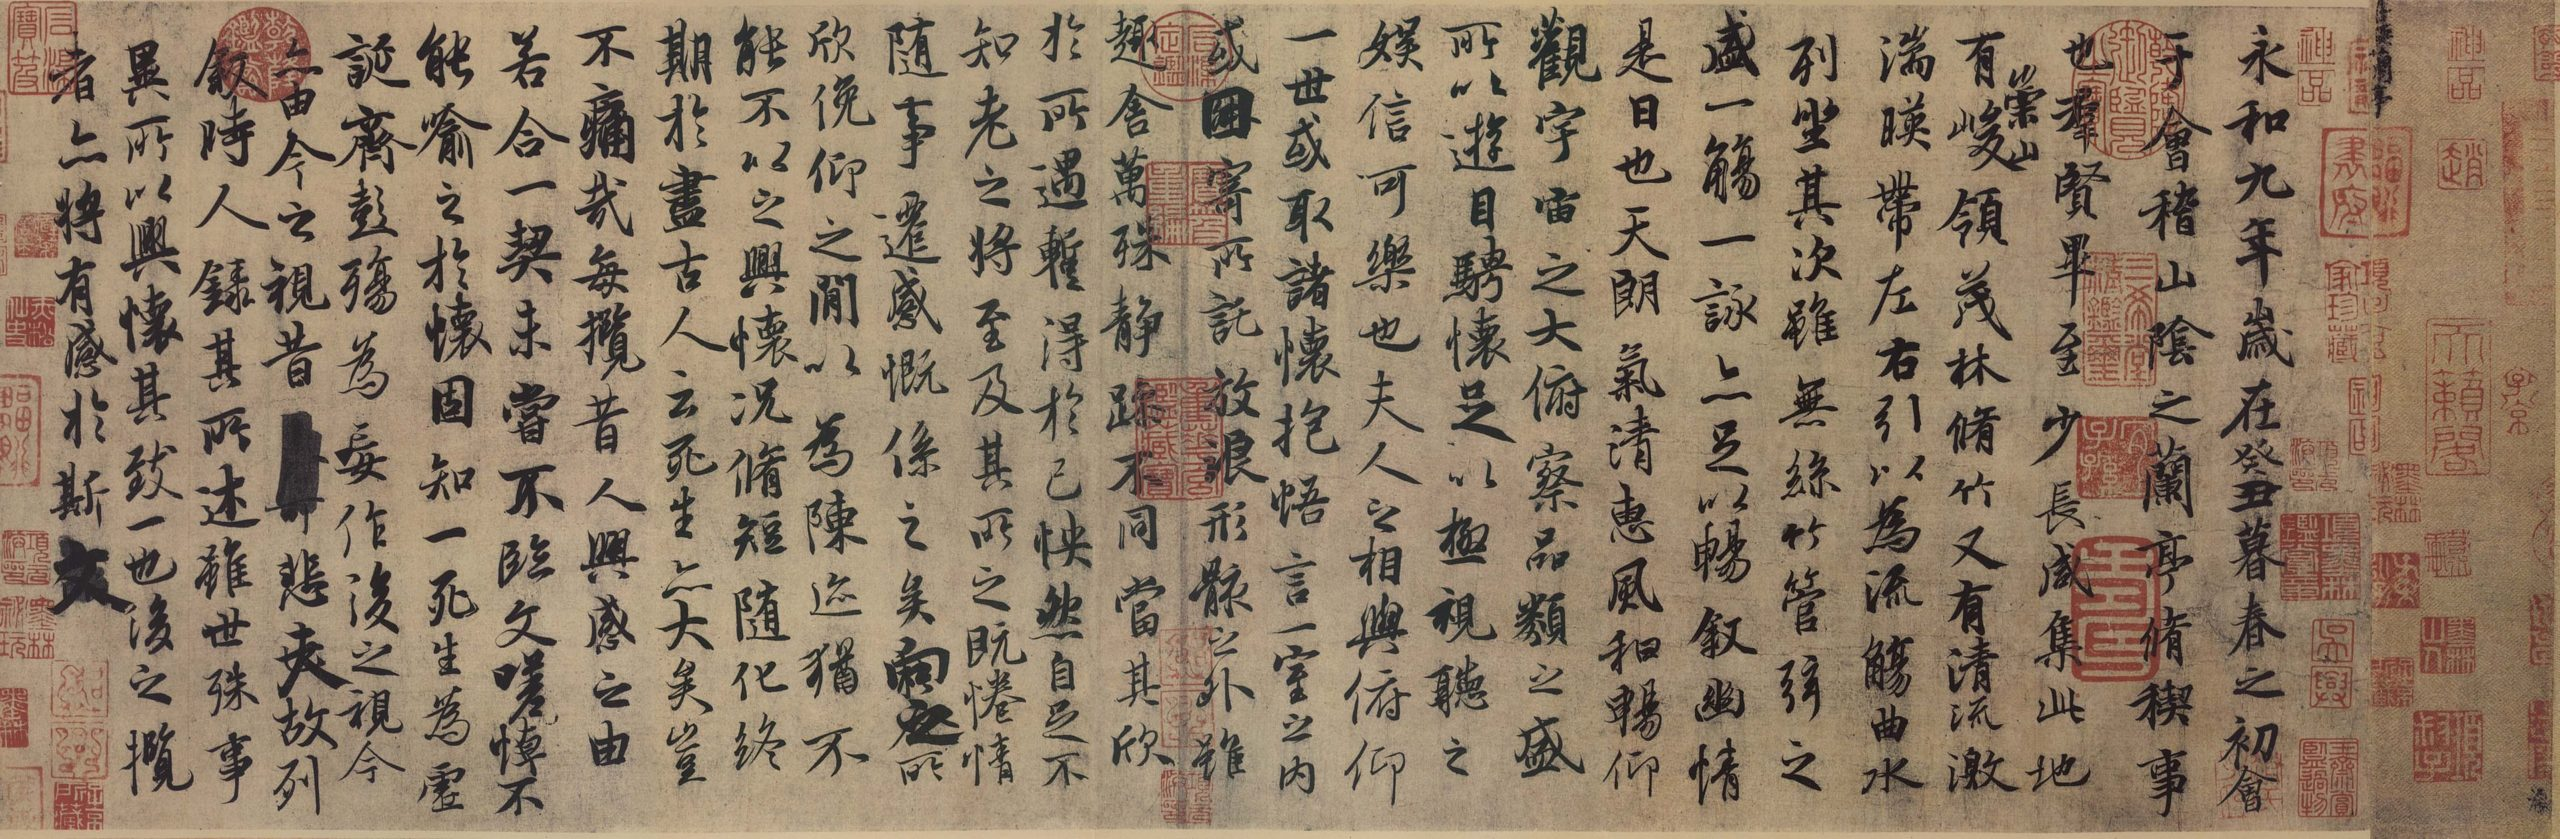 Chinese calligraphy has long been appreciated as an art form through its history. Here a copy of Wang Xizhi's Lantingji Xu, the most famous Chinese calligraphic work. © FENG CHENGSU, ORIGINAL BY WANG XIZHI